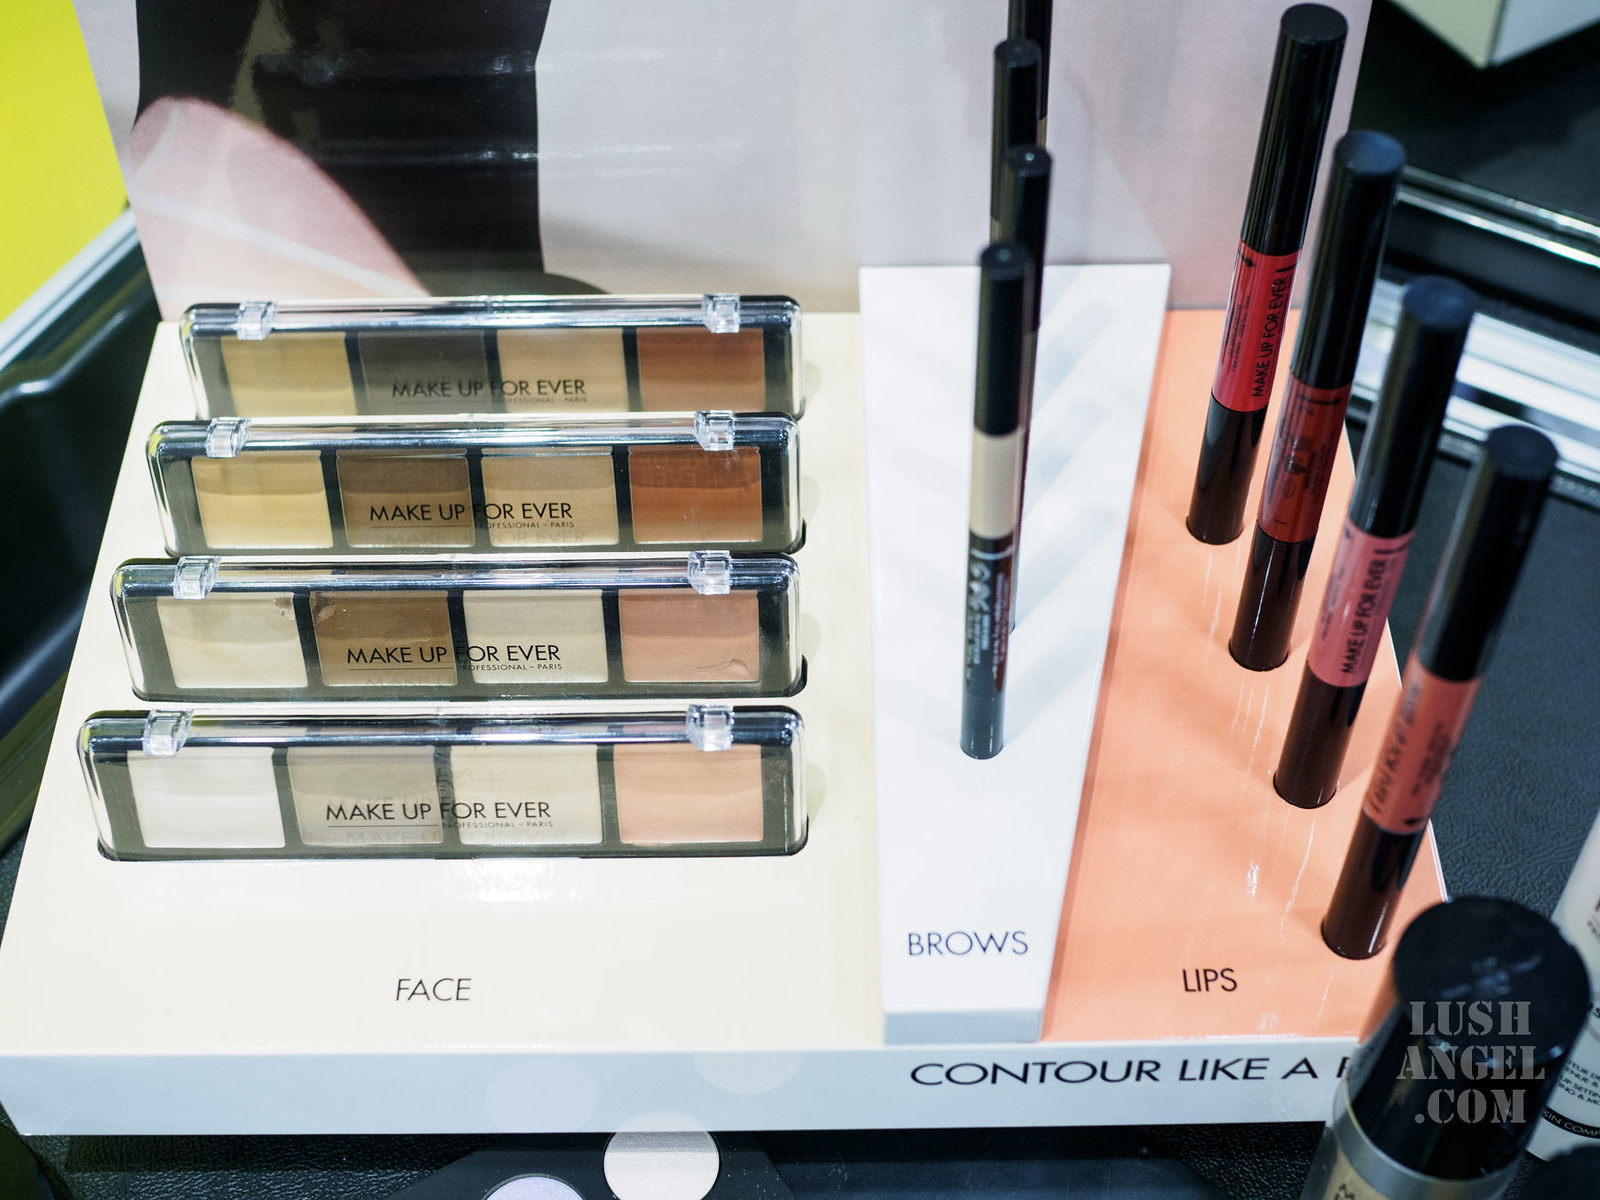 make-up-for-ever-contour-like-a-pro